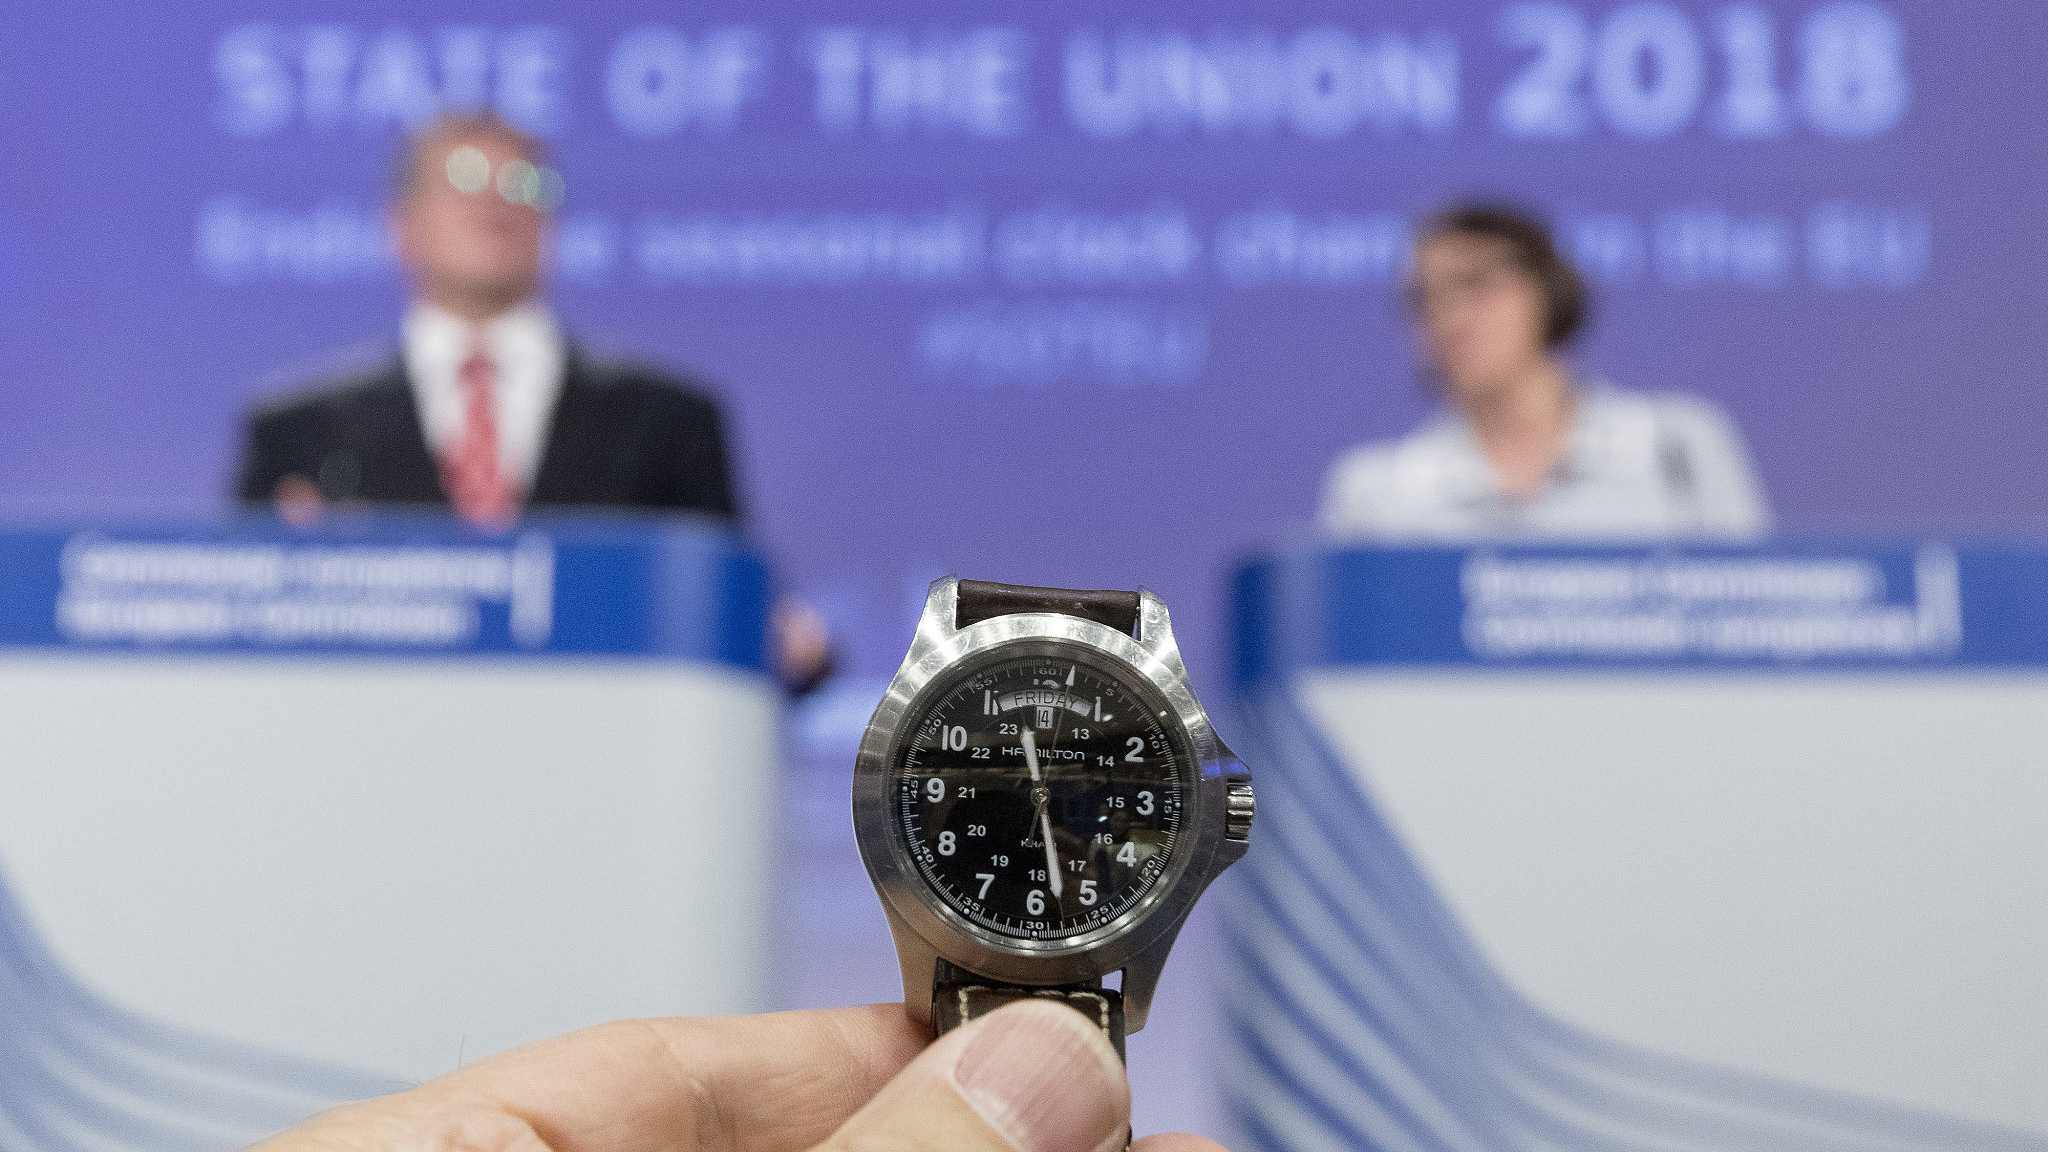 EU pleads for cooperation to avoid clock-change chaos